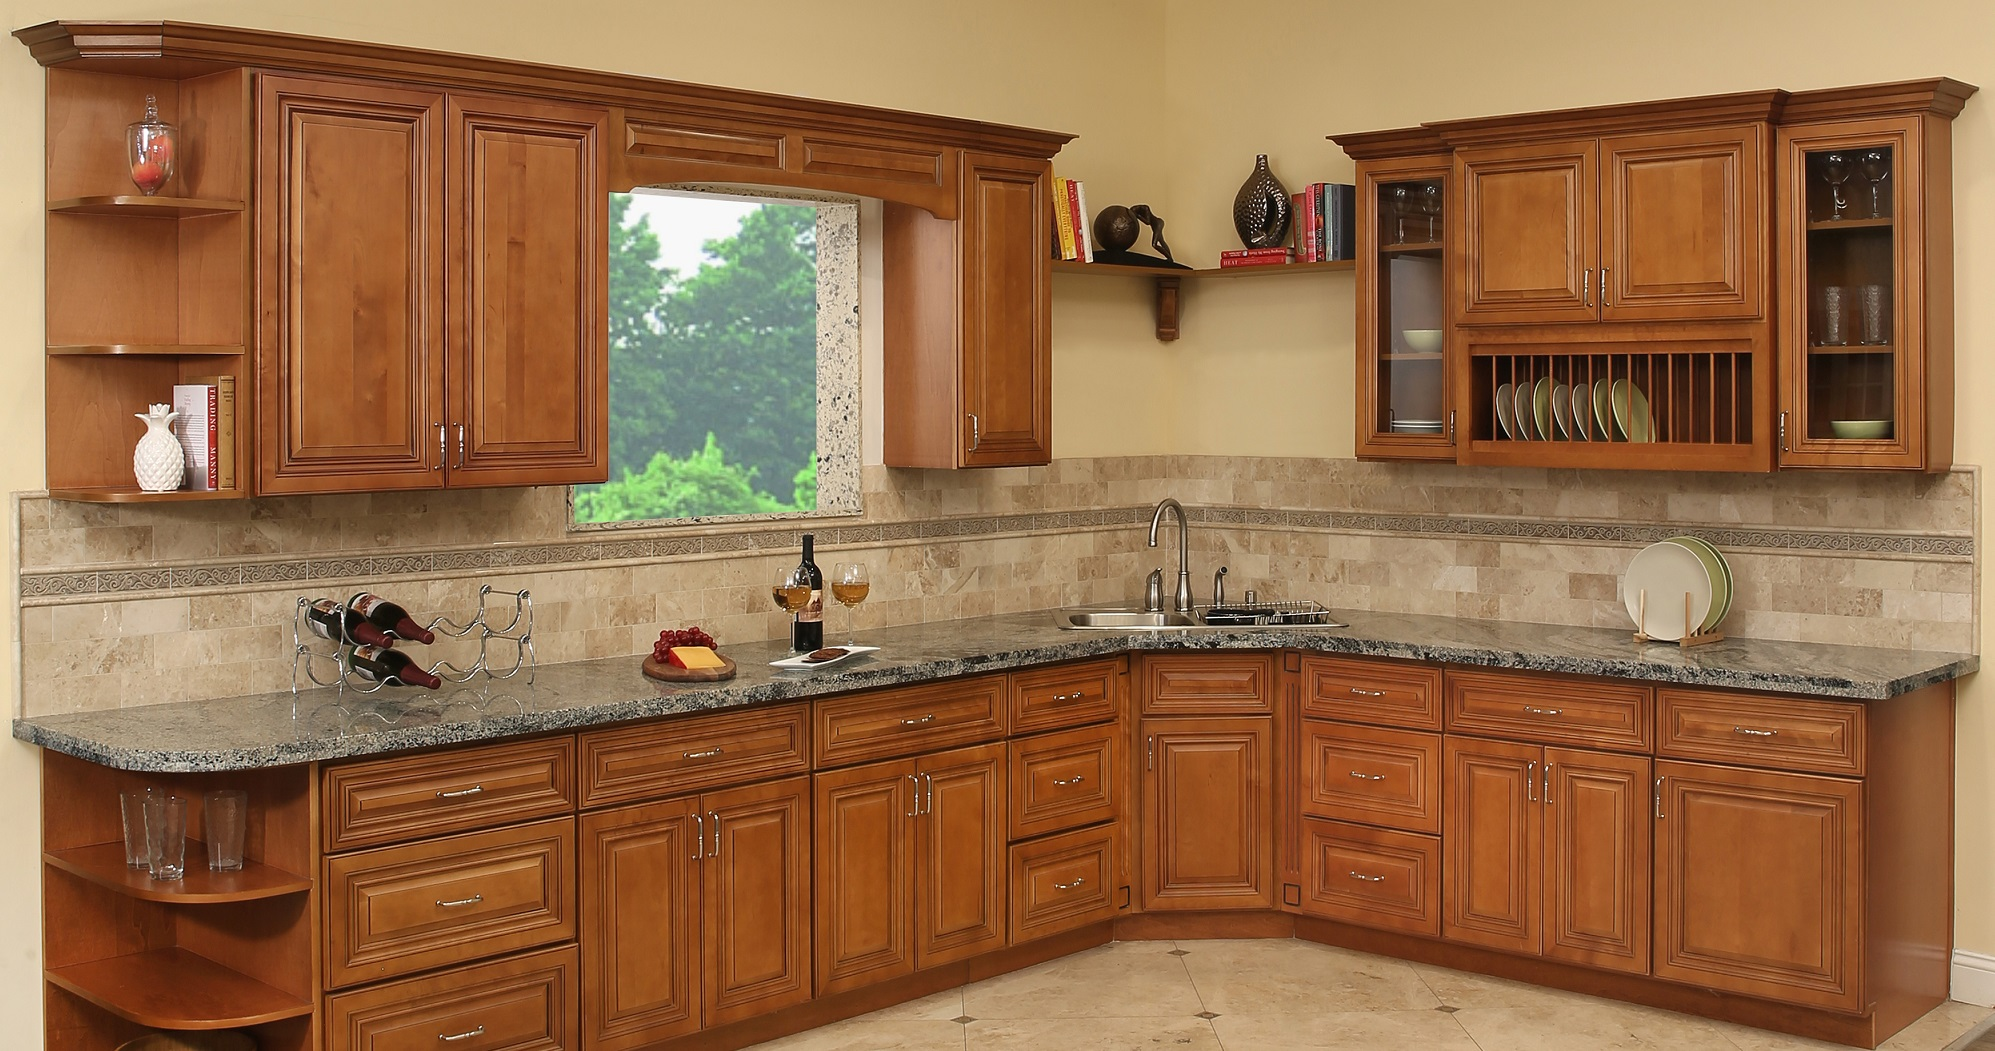 Ngy Stones Cabinets Inc All Products Kitchen Cabinets